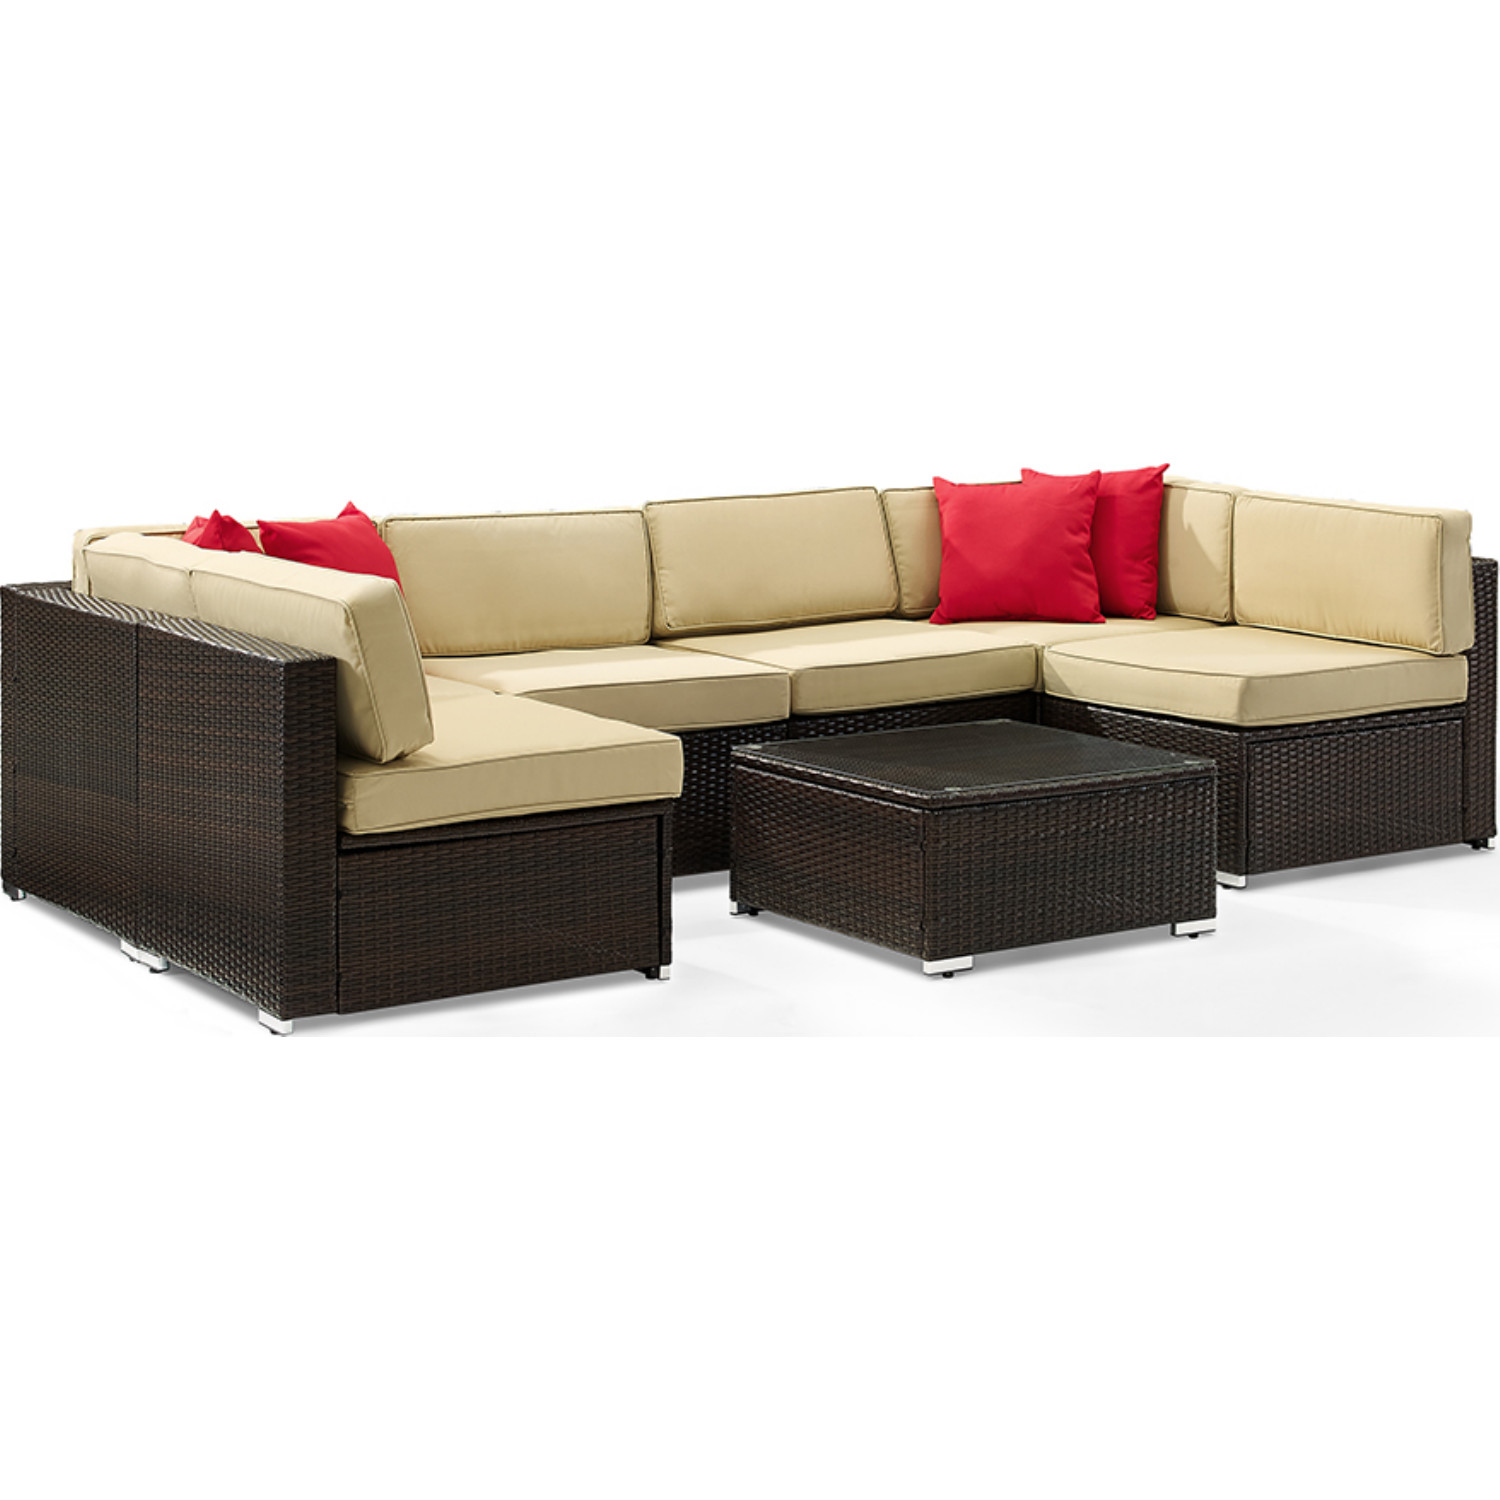 Stupendous Sea Island 7 Piece Outdoor Sectional Sofa Set In Brown Resin Wicker Sand Fabric By Crosley Squirreltailoven Fun Painted Chair Ideas Images Squirreltailovenorg